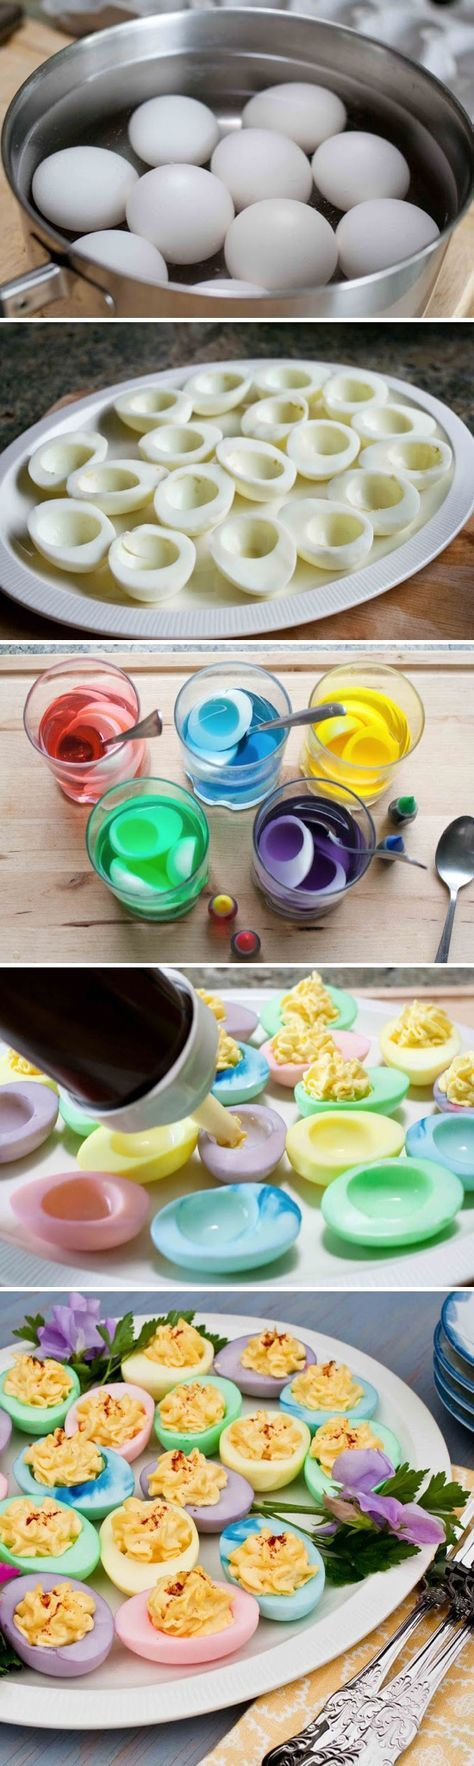 Colorful Deviled Eggs | worked fabulous!!!